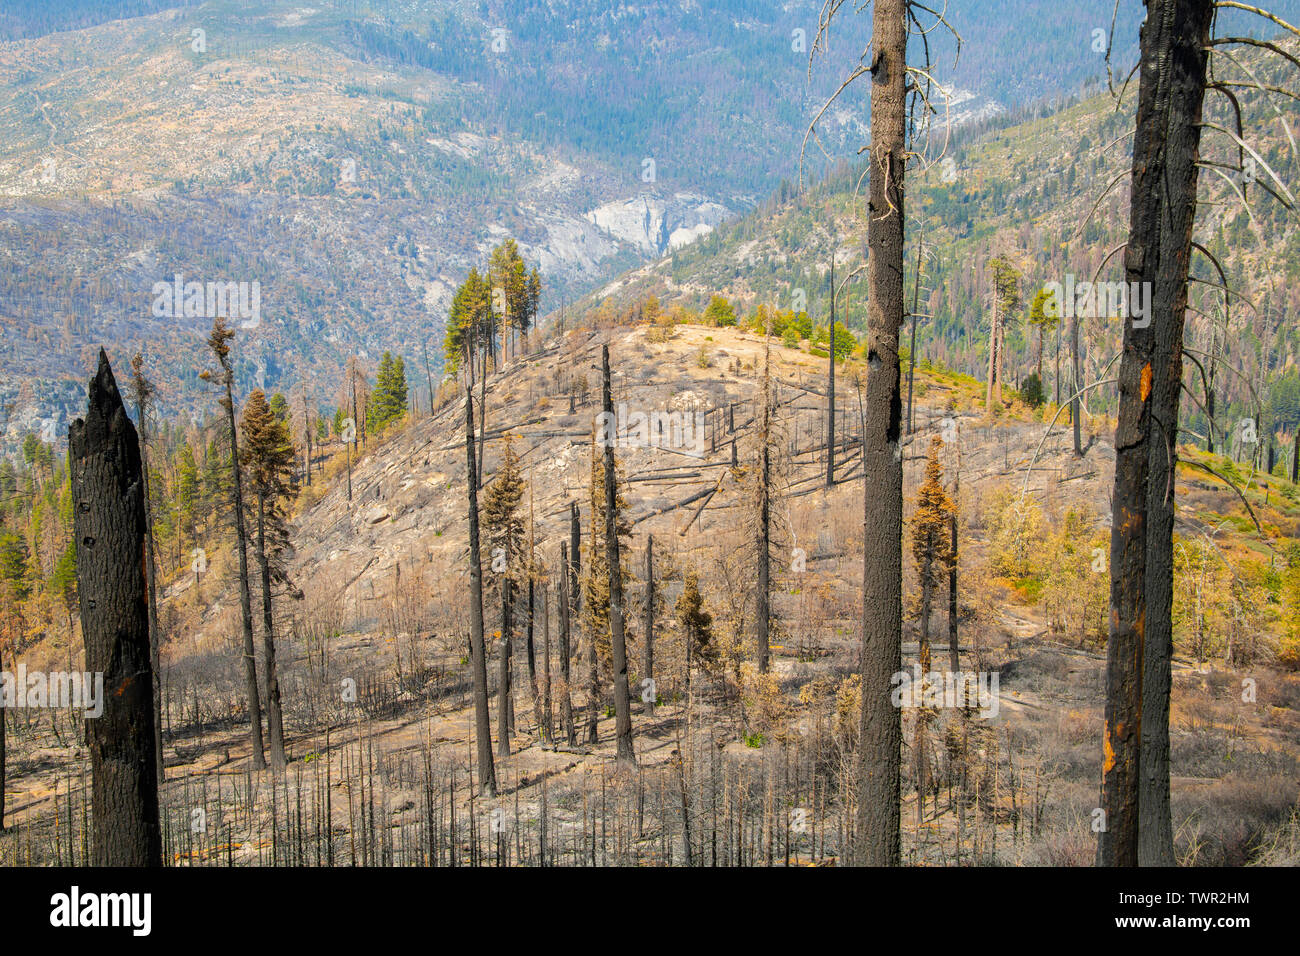 Aftermath of forest fires, Yosemite National Park, CA, USA, by Bill Lea/Dembinsky Photo Assoc - Stock Image